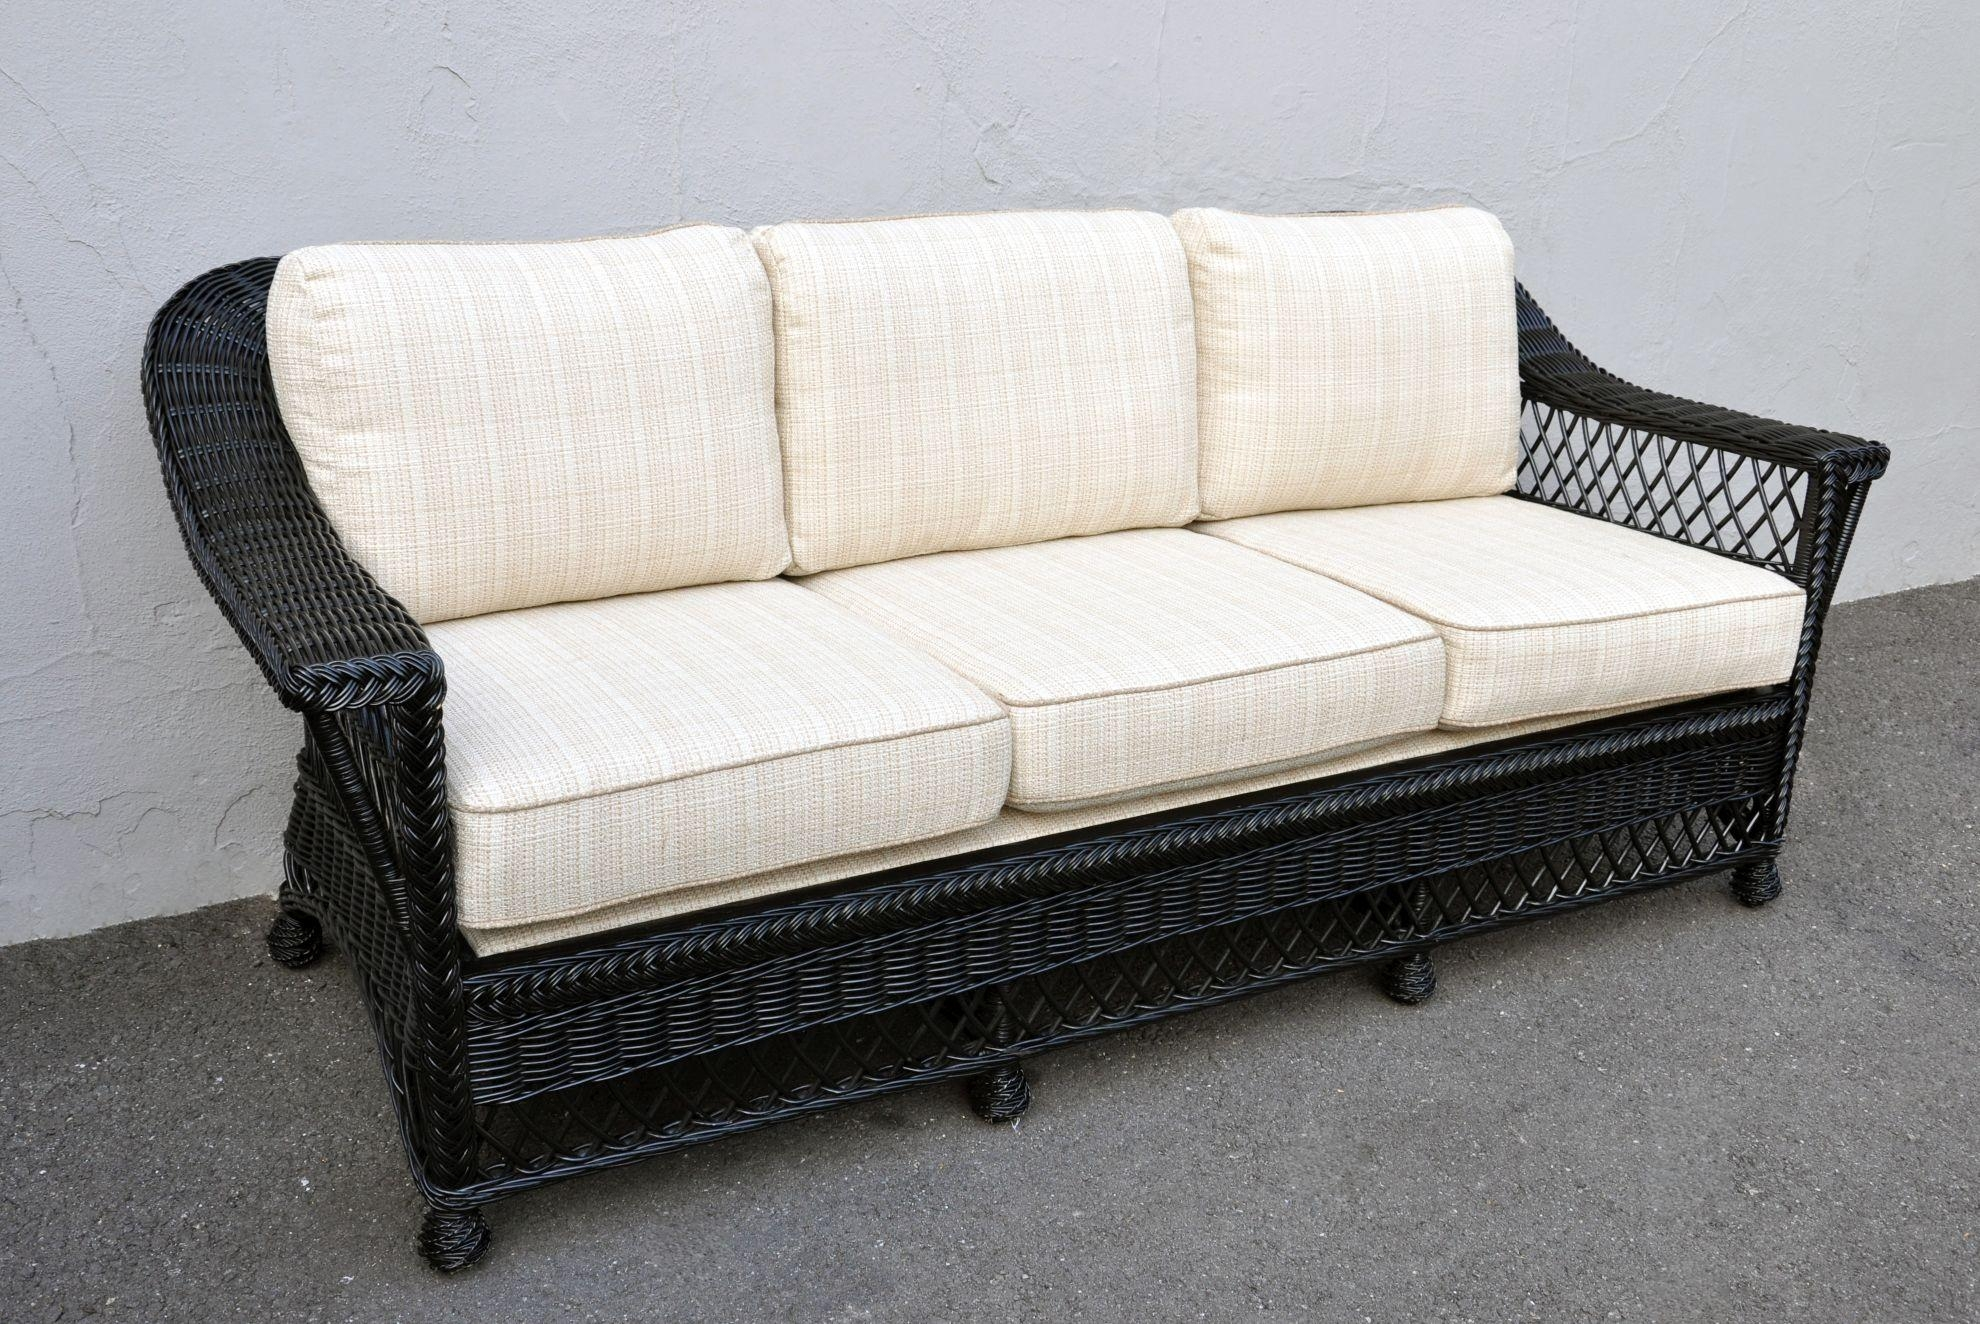 Bar Harbor Black Painted Rattan Sofa – Mecox Gardens With Black Wicker Sofas (View 19 of 20)